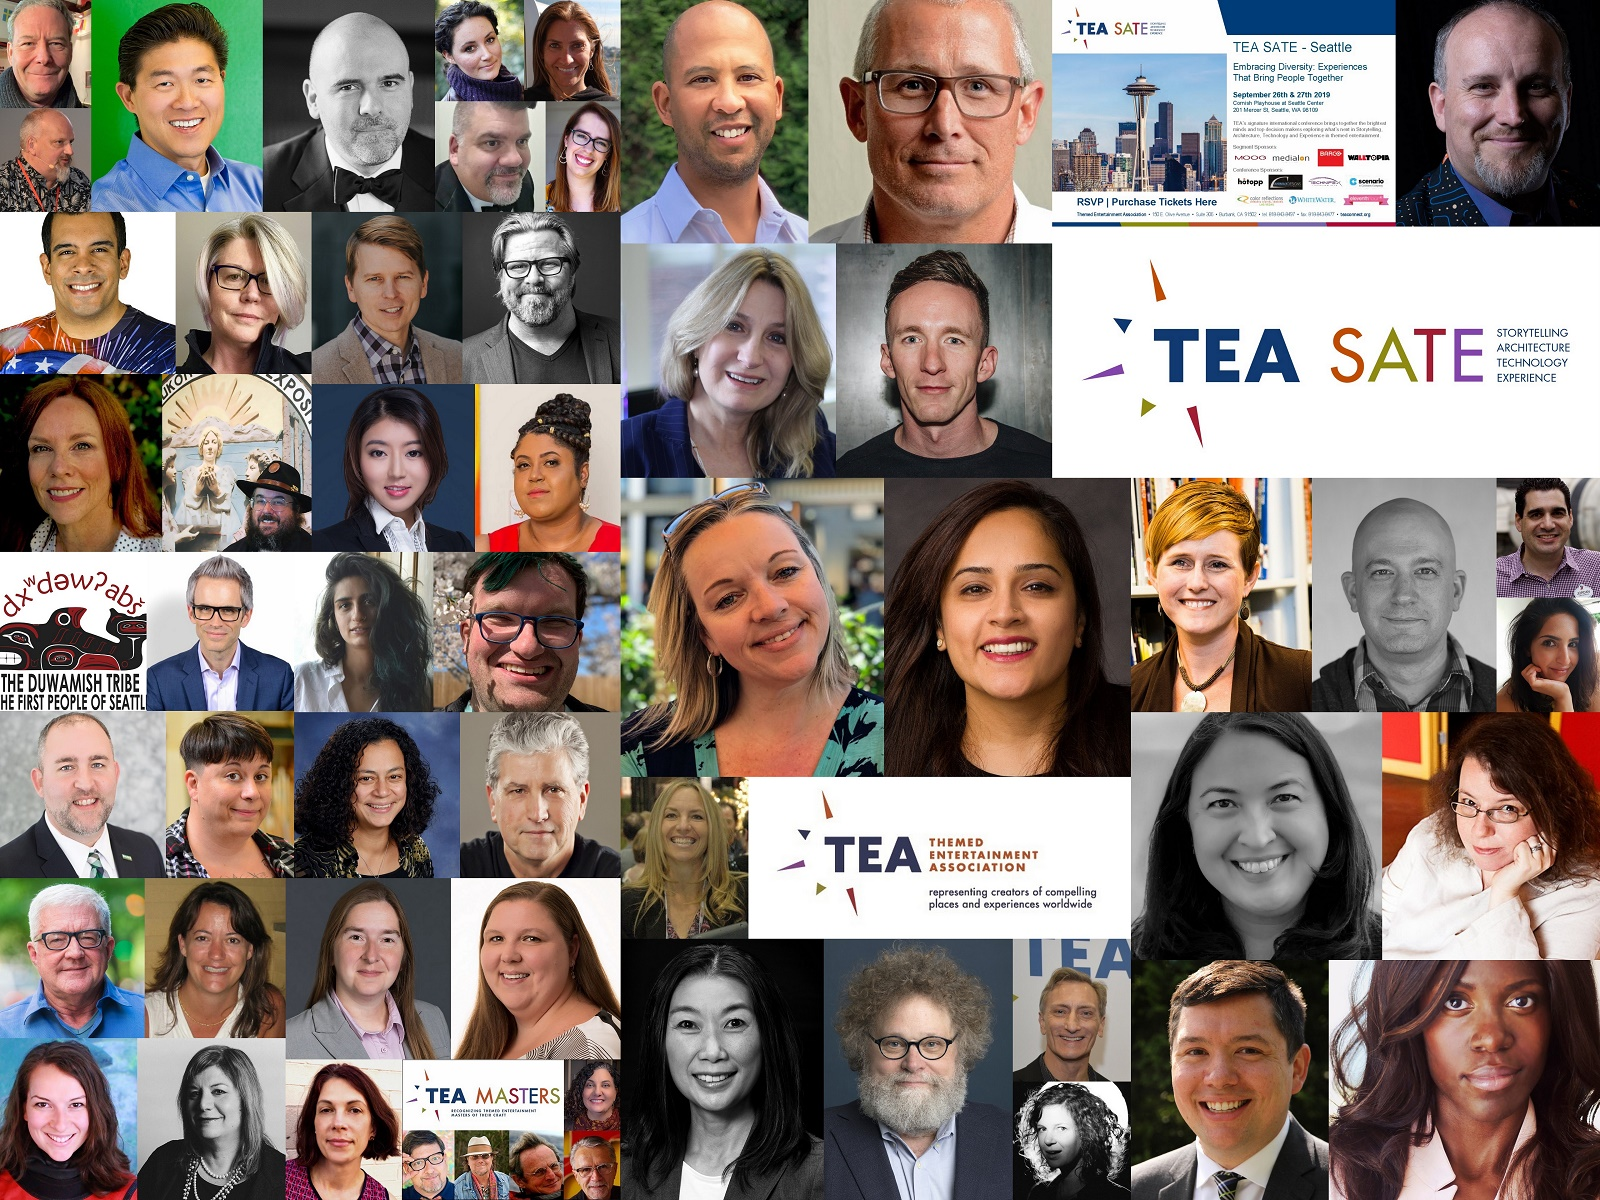 Speakers, sessions, schedule and more: TEA SATE - Seattle, 26-27 Sept 2019